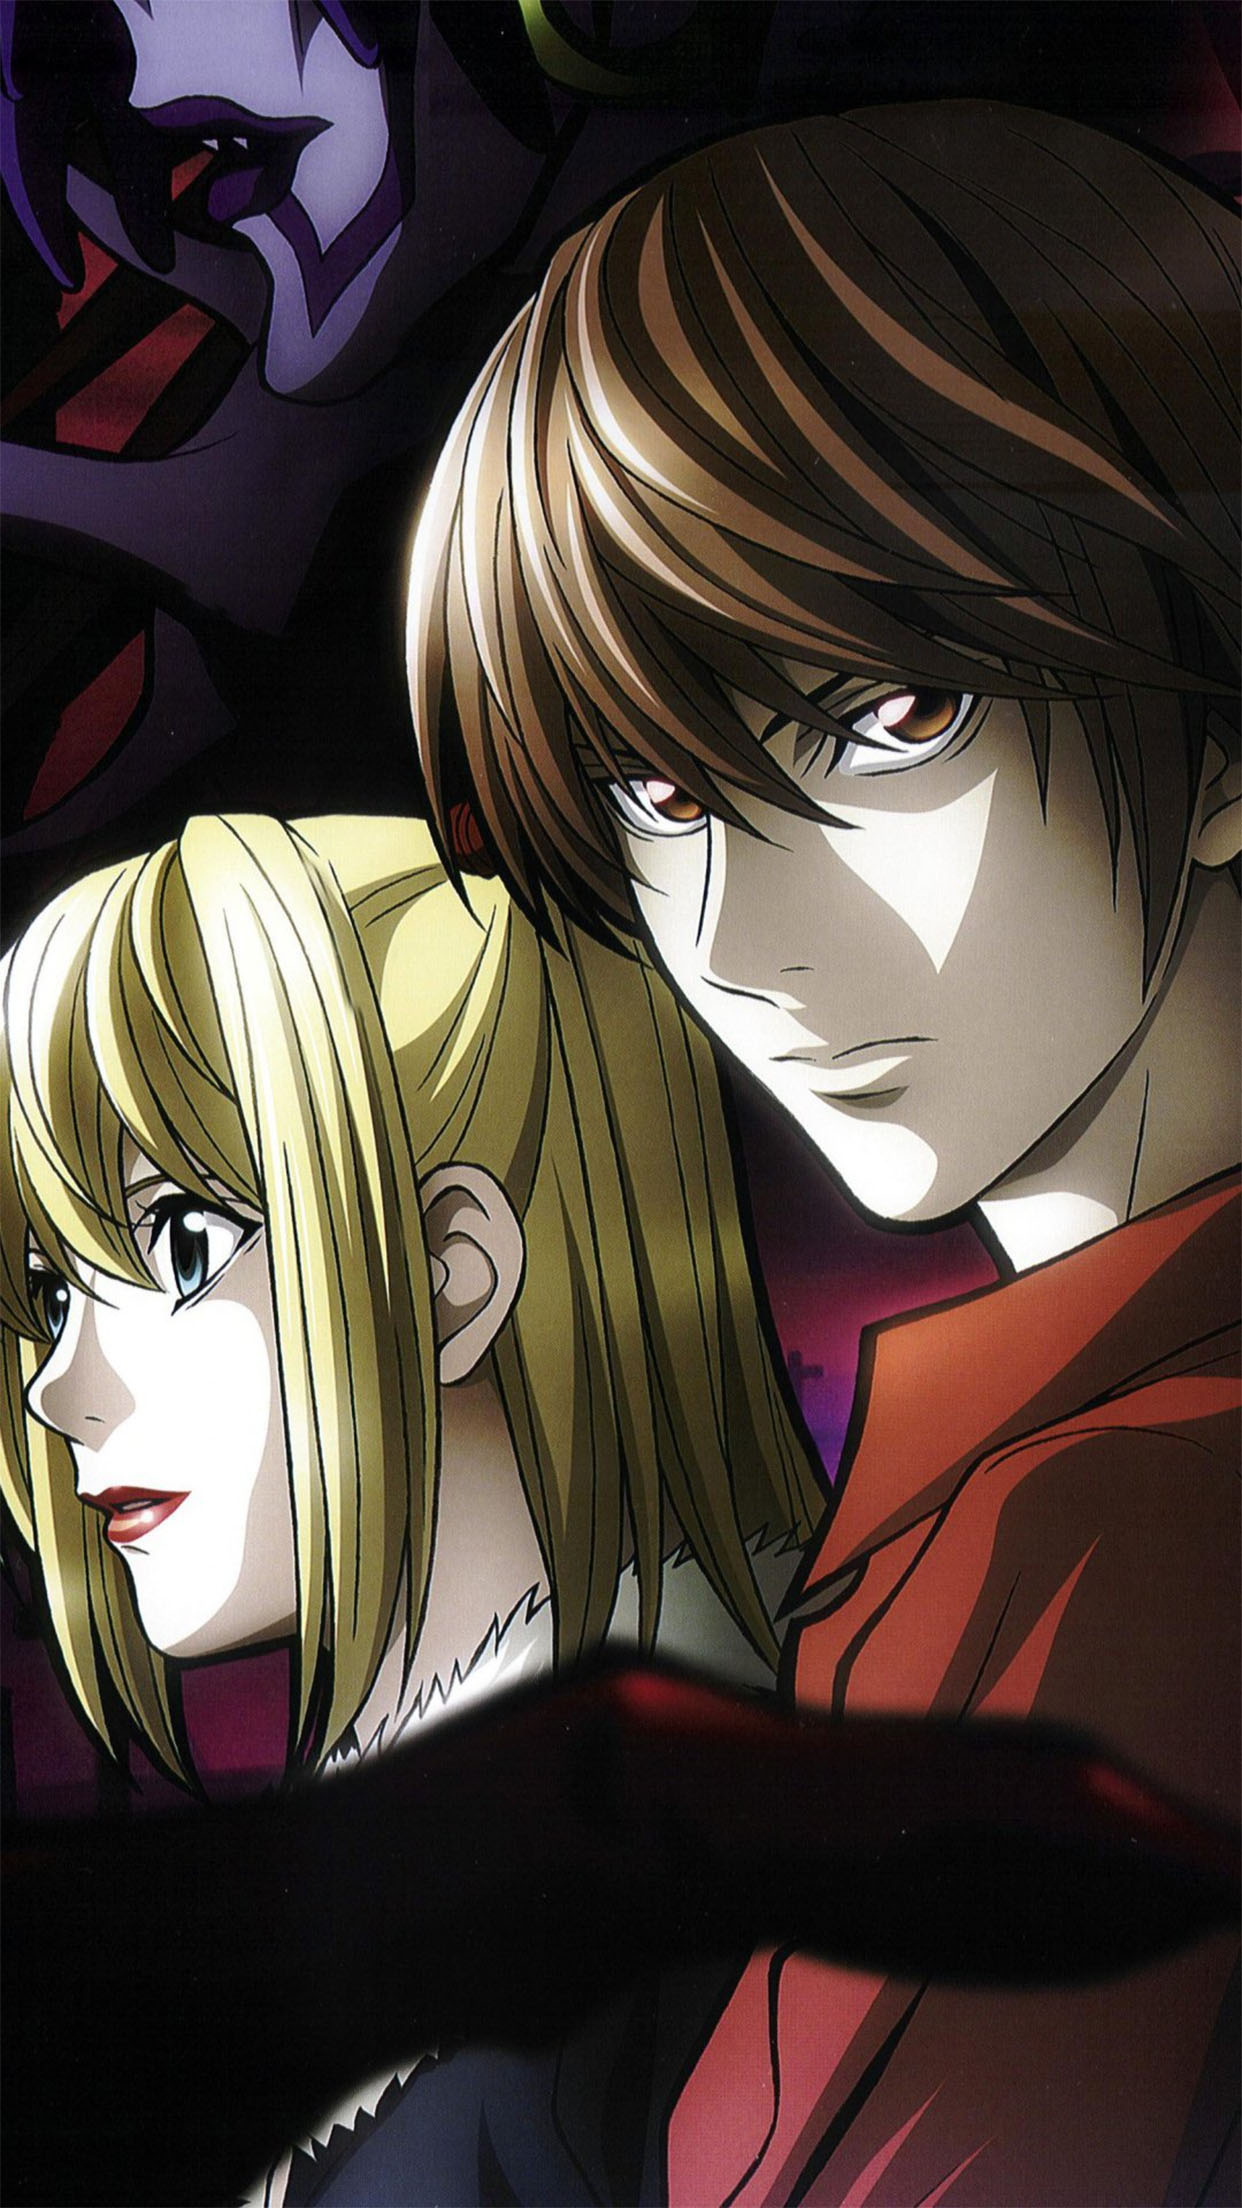 Misa Amane And Light Yagami Wallpaper For Iphone X 8 7 6 Free